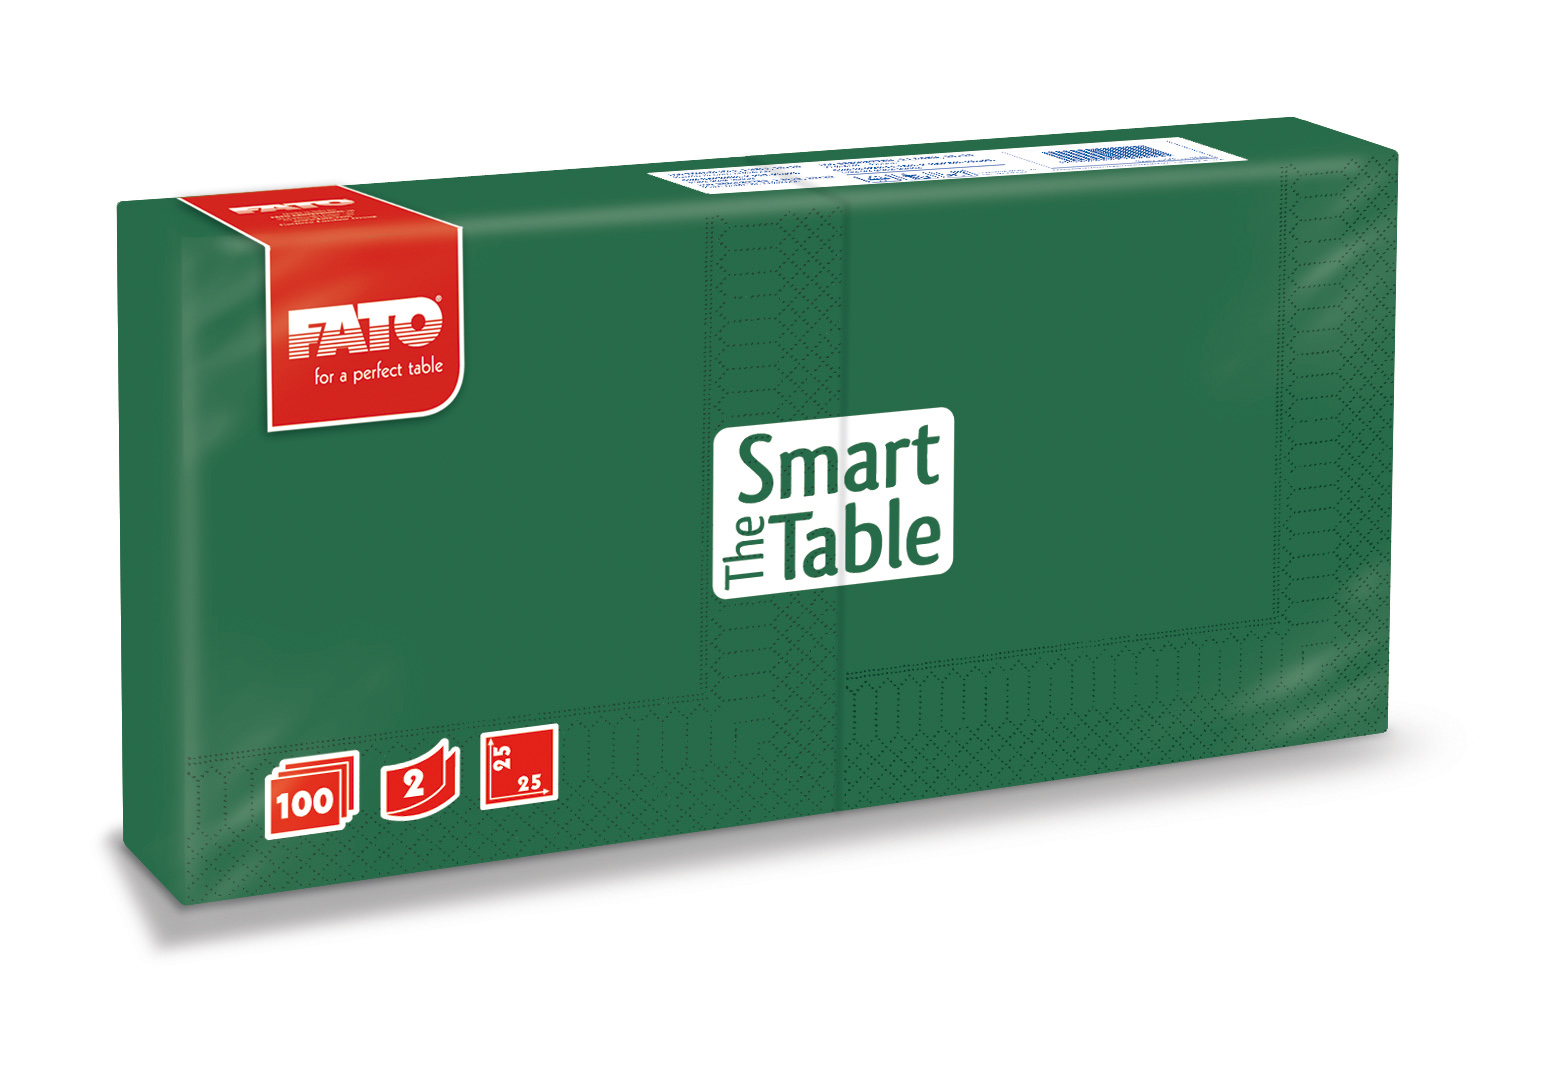 Ubrousky The Smart Table, 25x25cm, 2vr., Tm. Zelené - 3800 ks